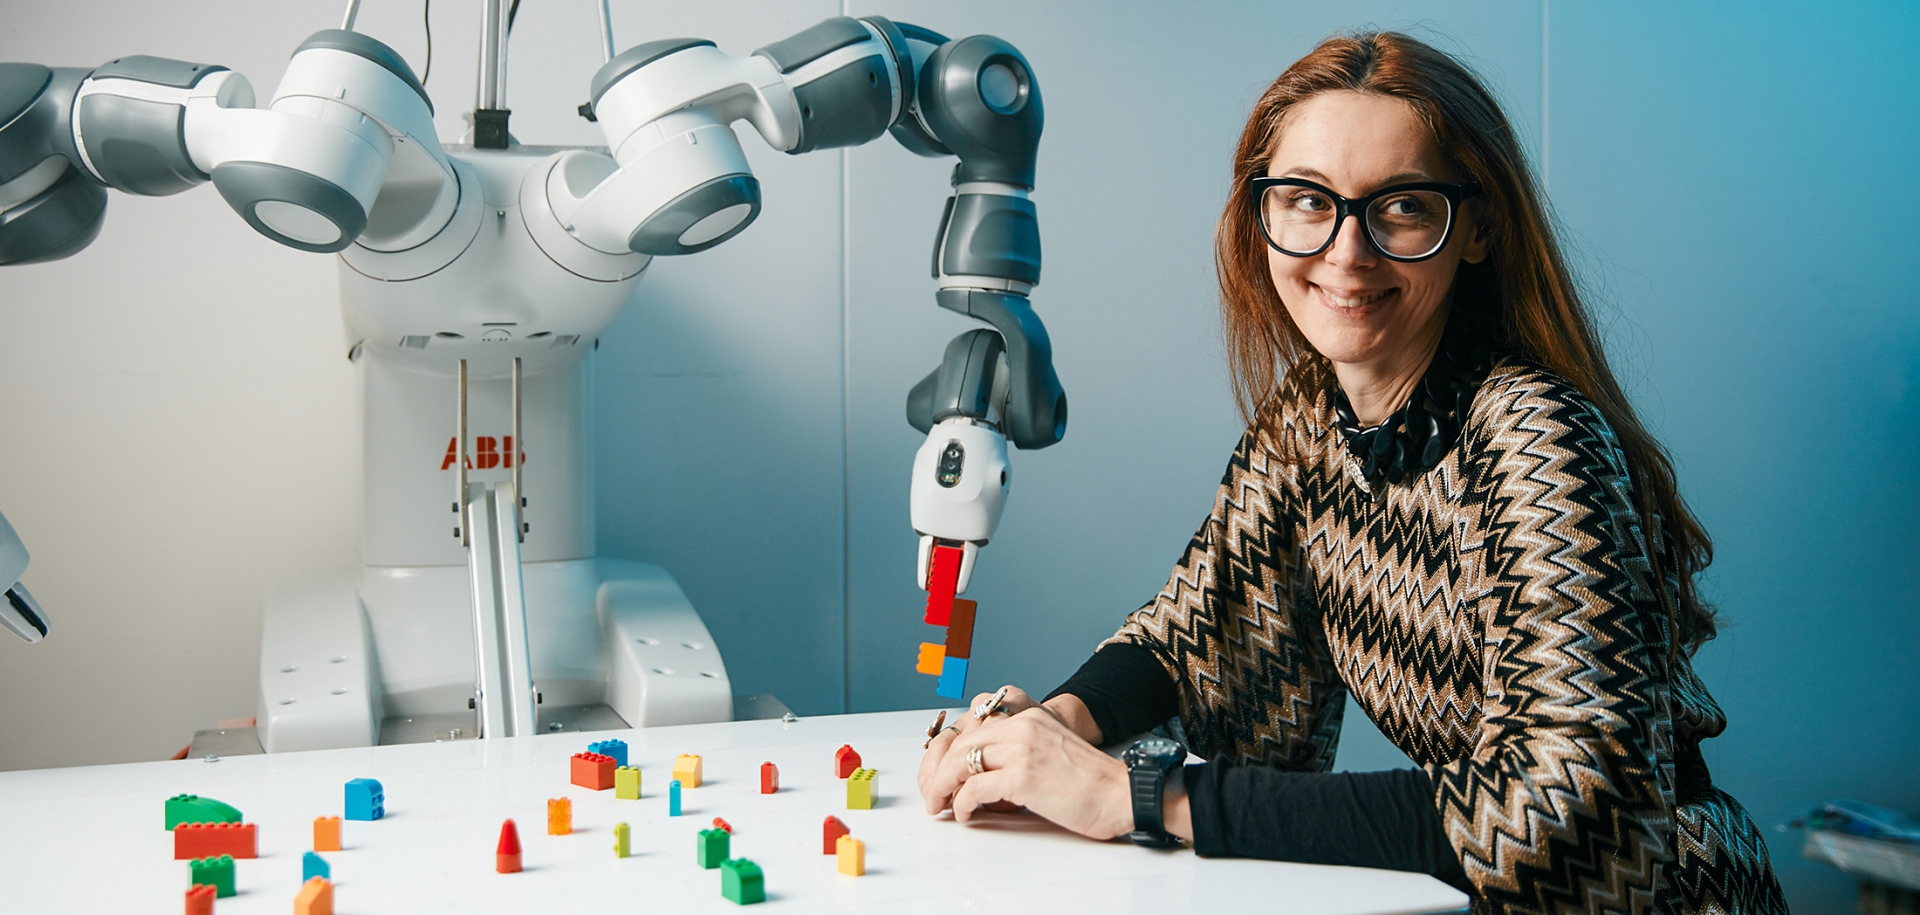 Danica Kragic Is On A Mission To Create Ethical Robots Evolution